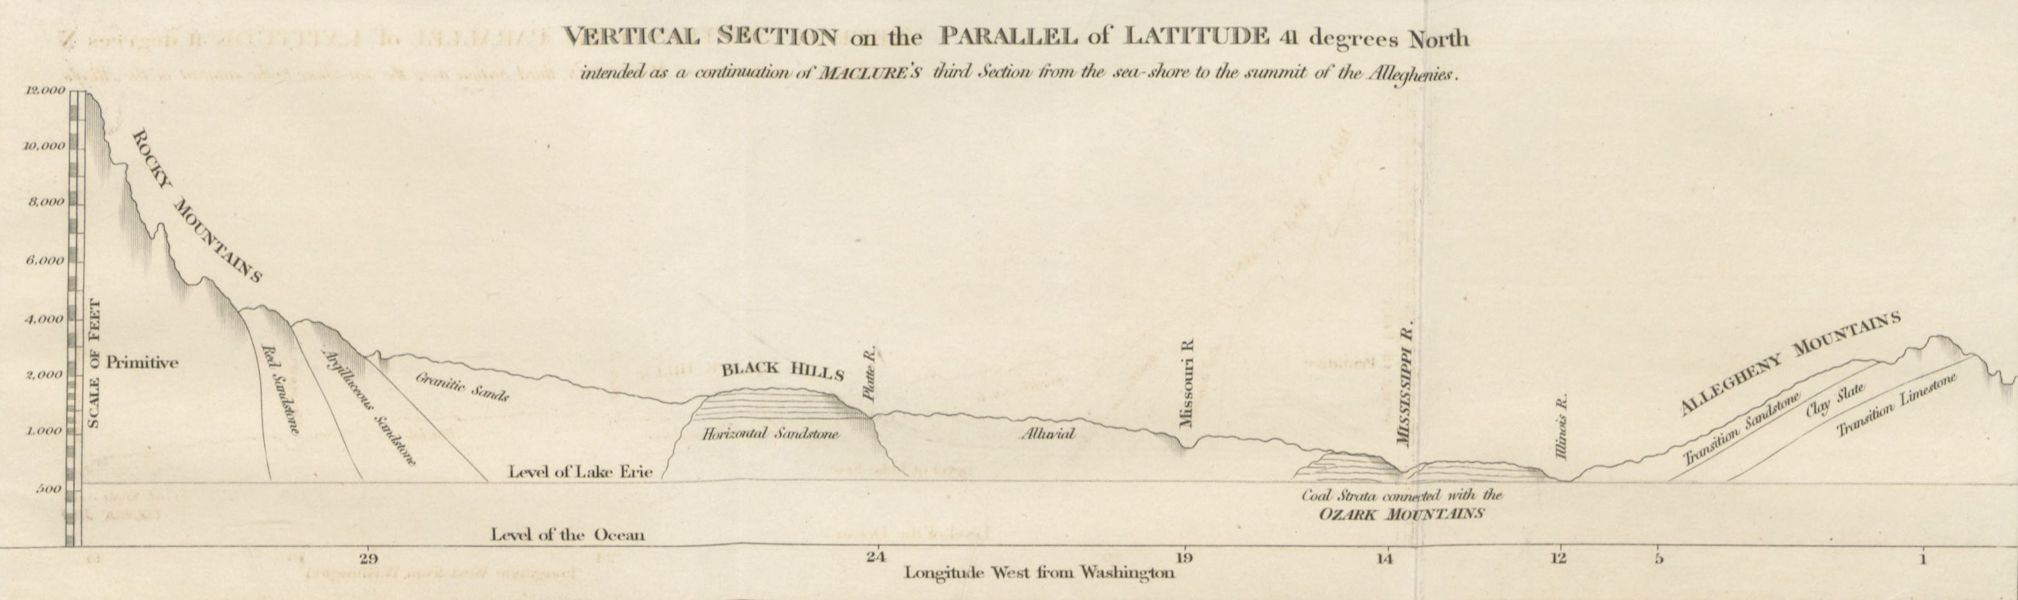 Account of an Expedition from Pittsburgh to the Rocky Mountains Vol. 3 - Vertical Section on the Parallel of Latitude 41 Degrees North (1823)